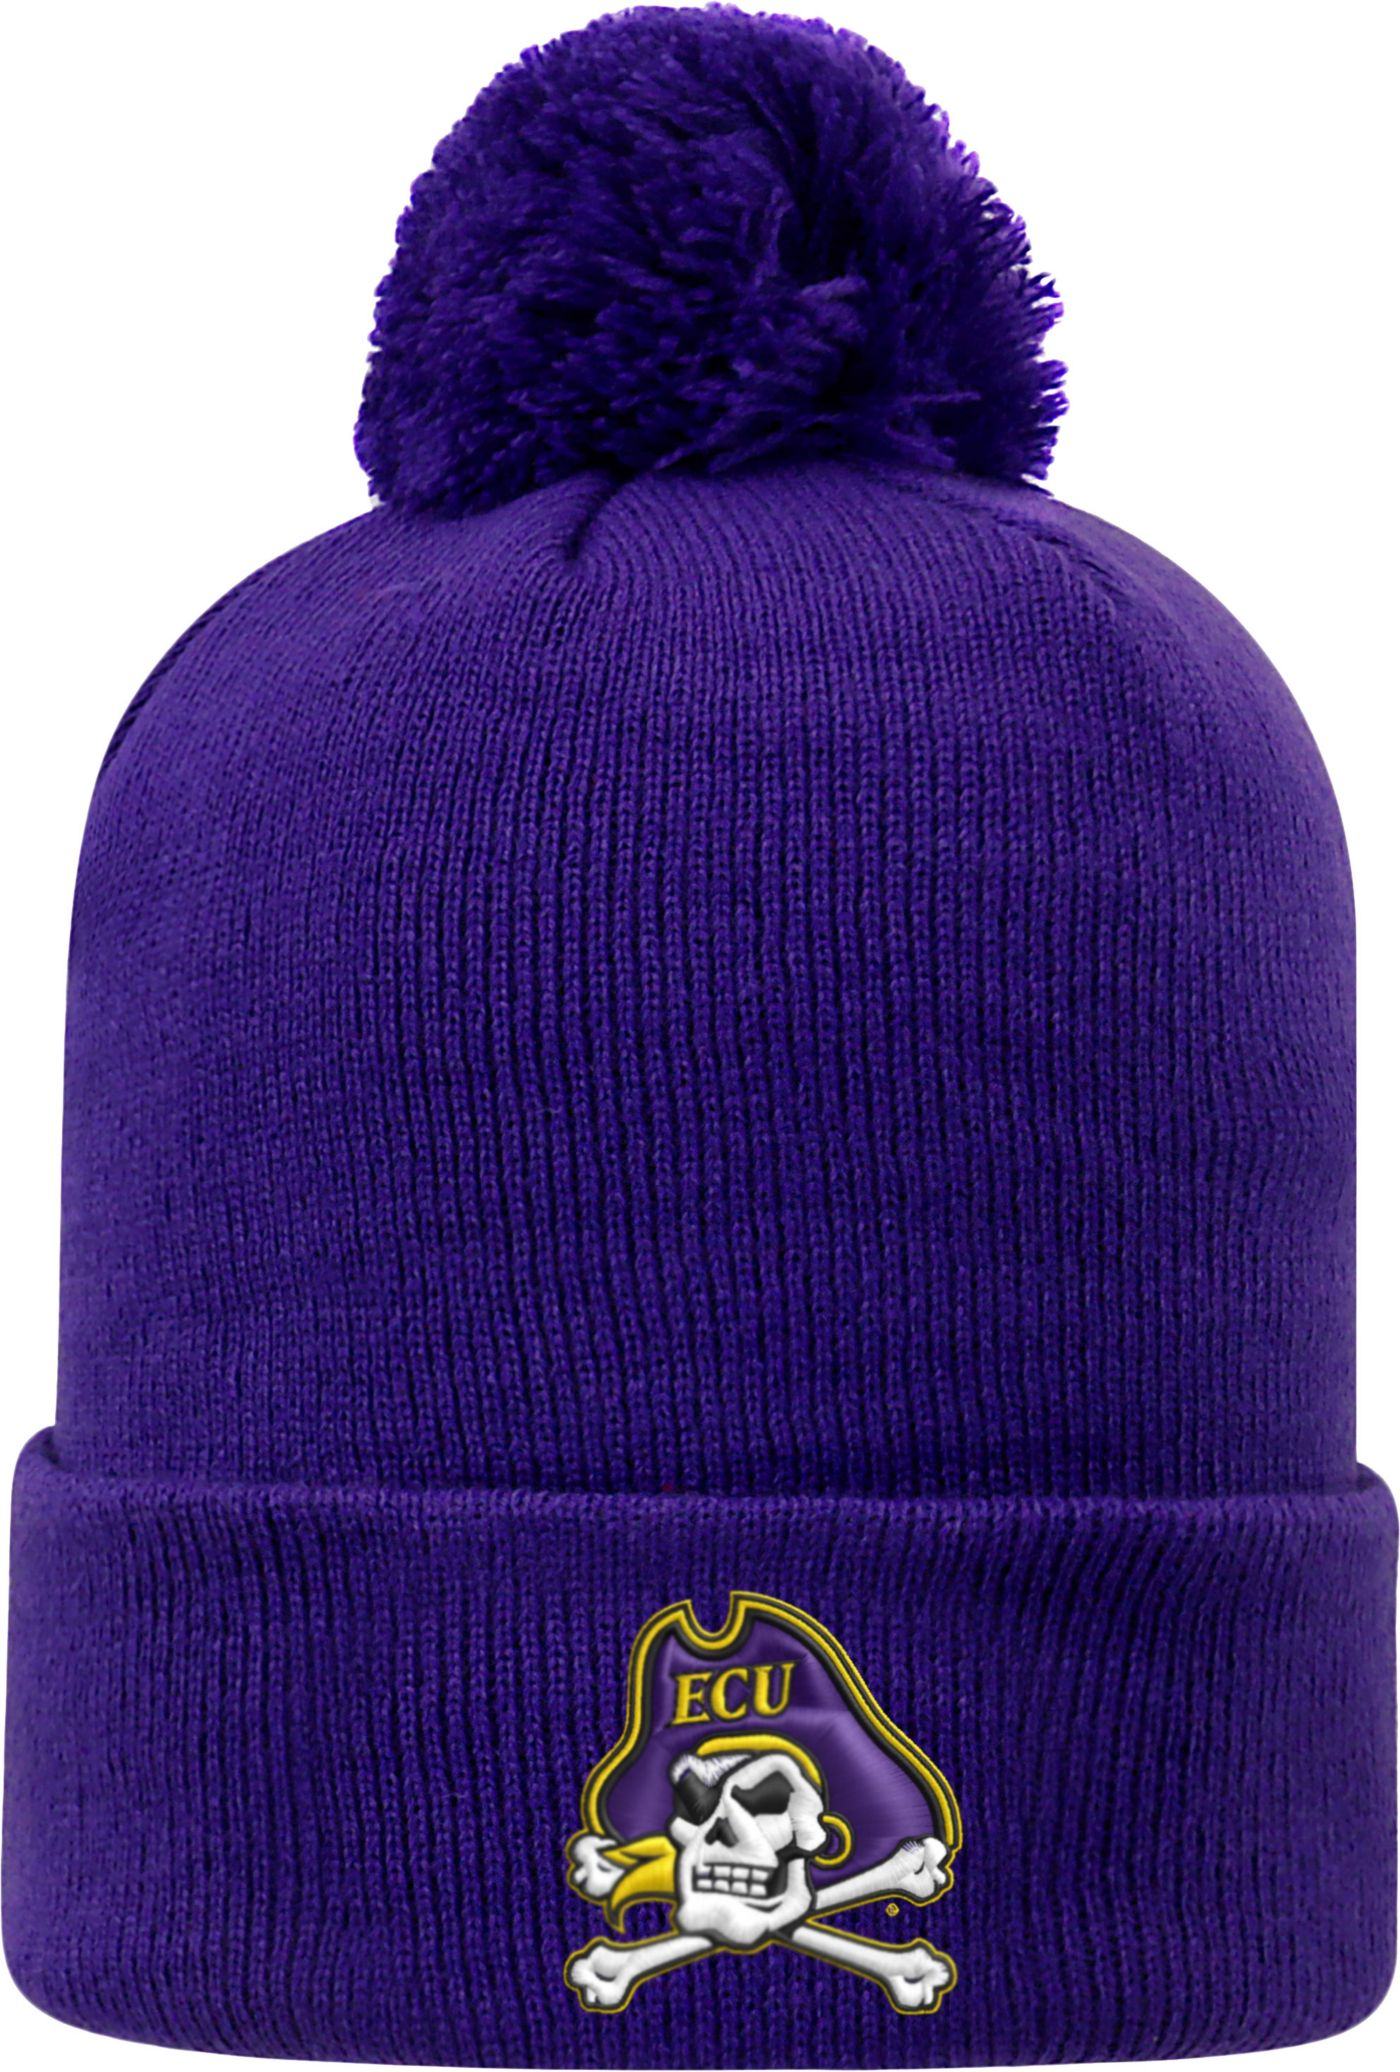 Top of the World Men's East Carolina Pirates Purple Pom Knit Beanie